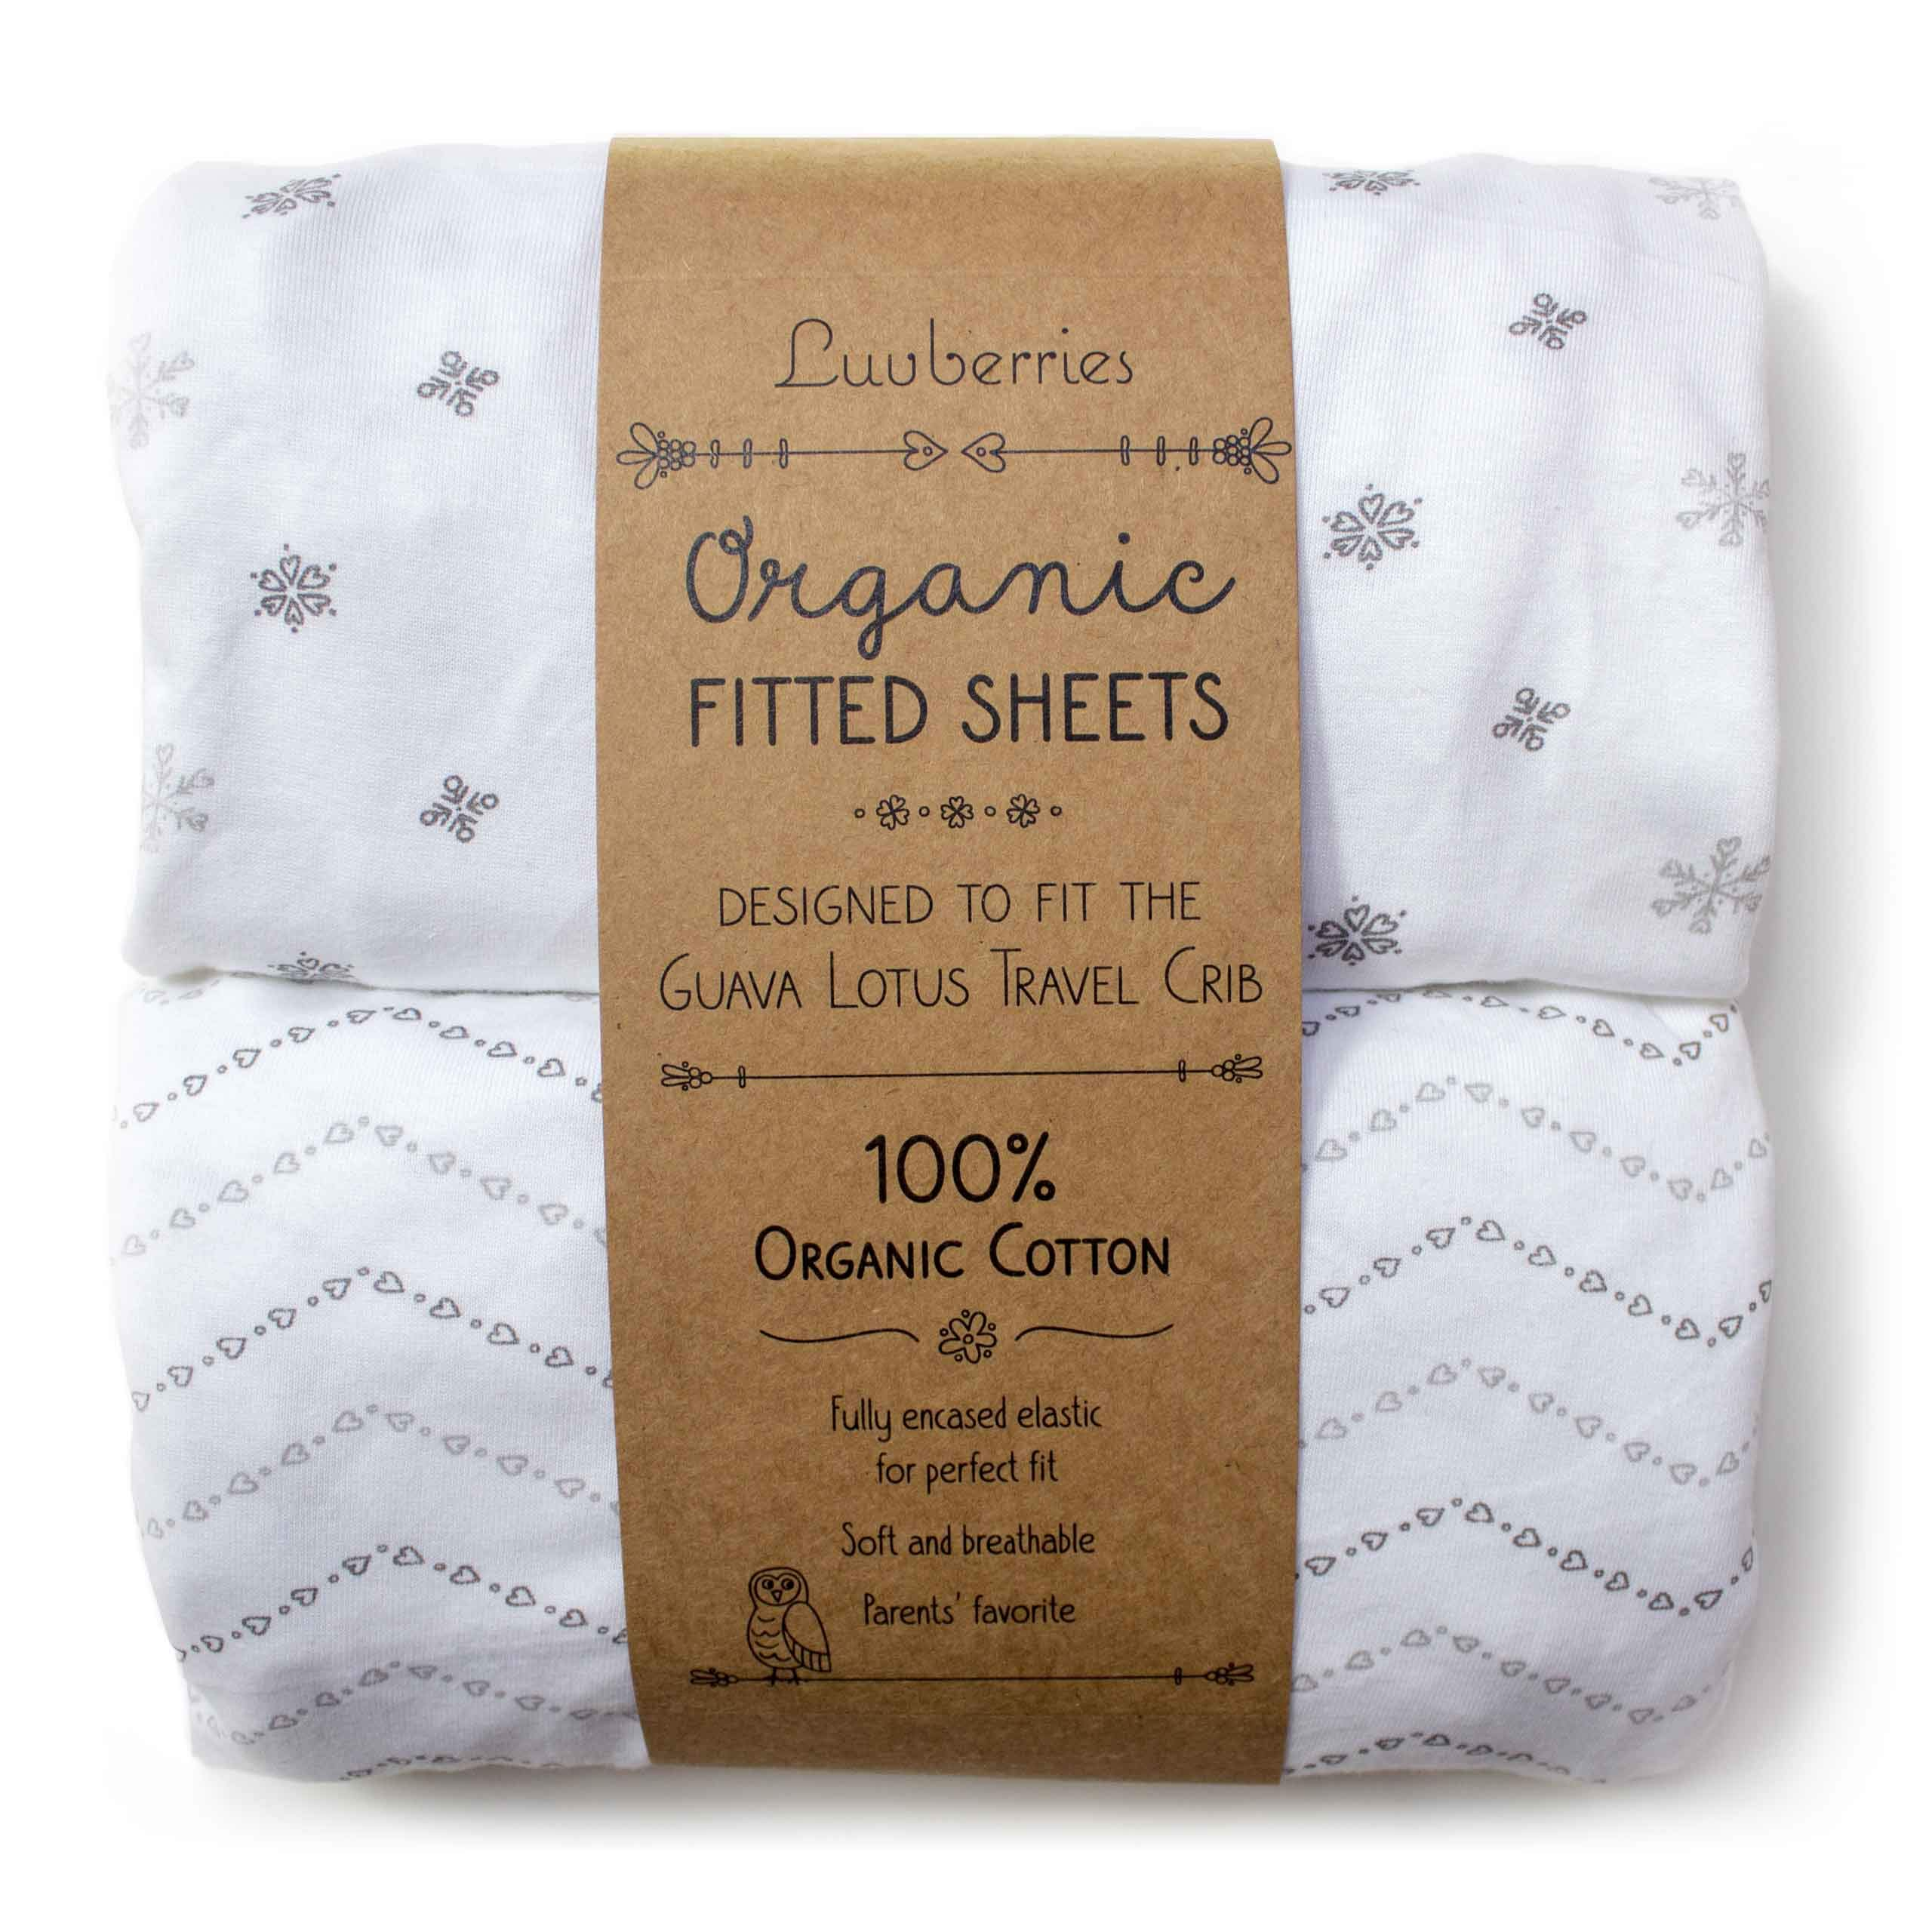 Guava Lotus Travel Crib Sheets (Set of 2) - 100% Organic Cotton Crib Sheets, Baby and Toddler, Fitted Crib Sheets, for Boys & Girls (for The New 4 TAB Mattress ONLY) by Luvberries